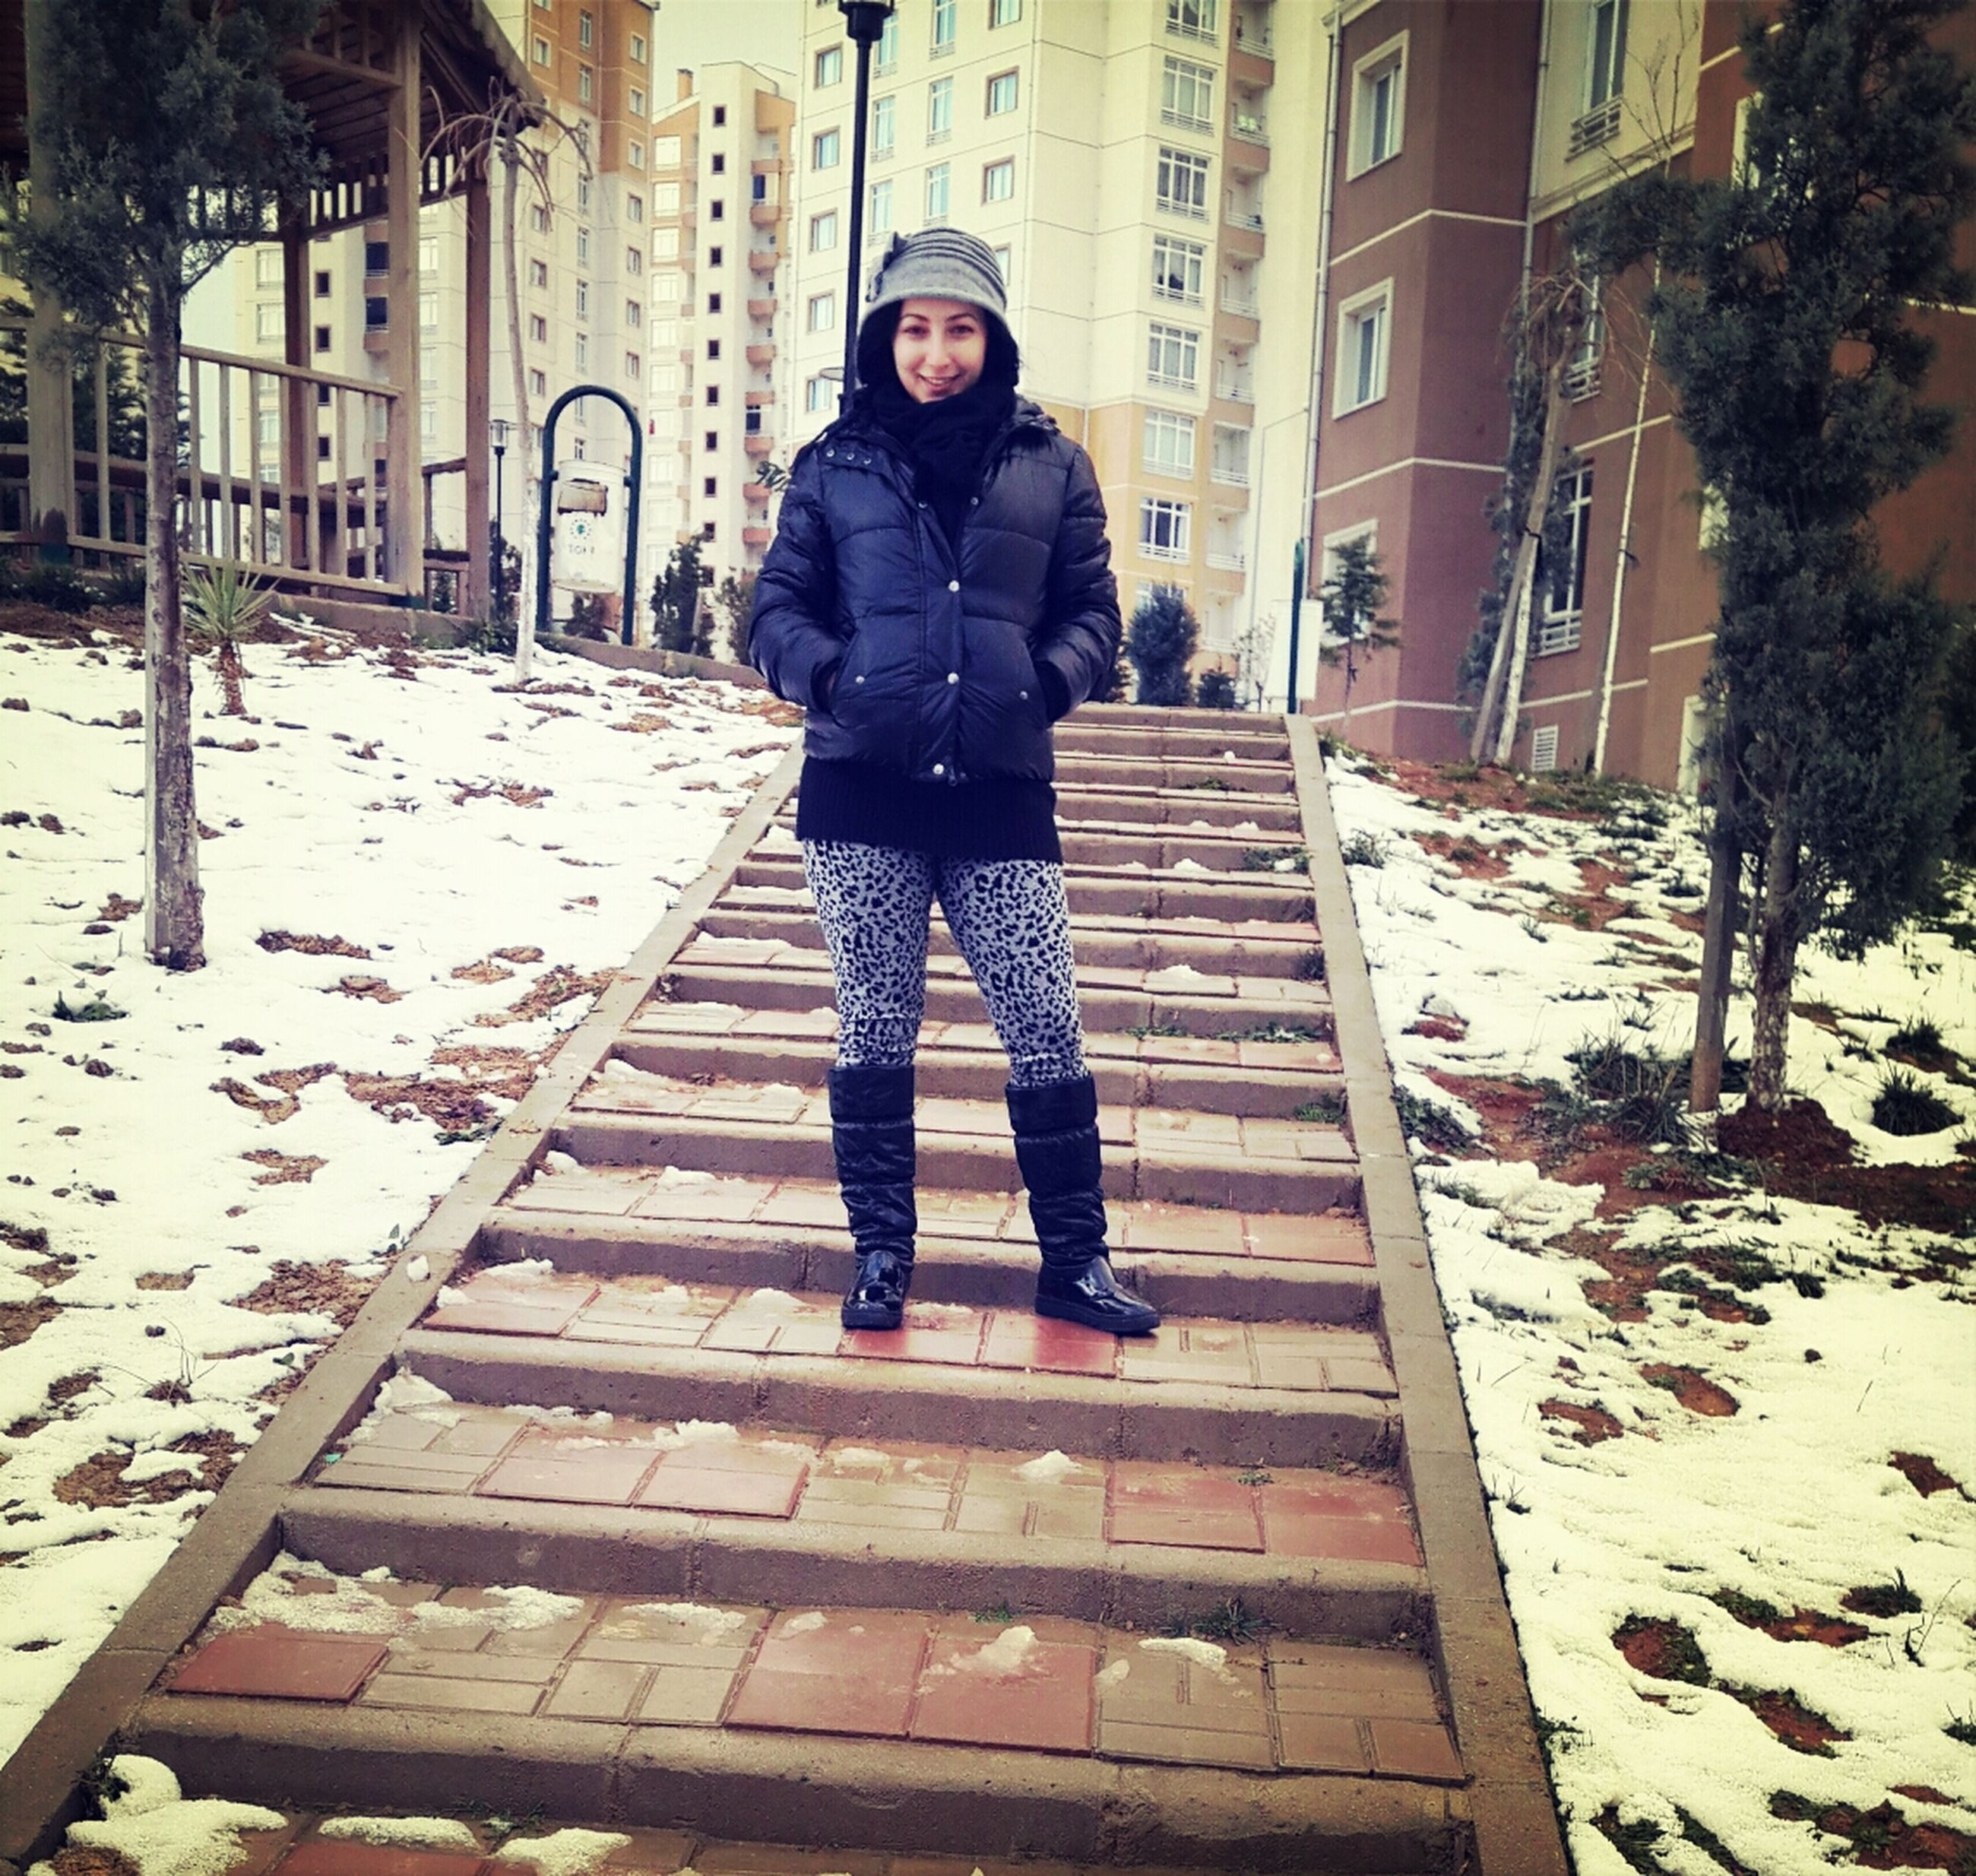 full length, snow, winter, lifestyles, building exterior, built structure, architecture, cold temperature, season, warm clothing, standing, casual clothing, leisure activity, walking, front view, young adult, rear view, steps